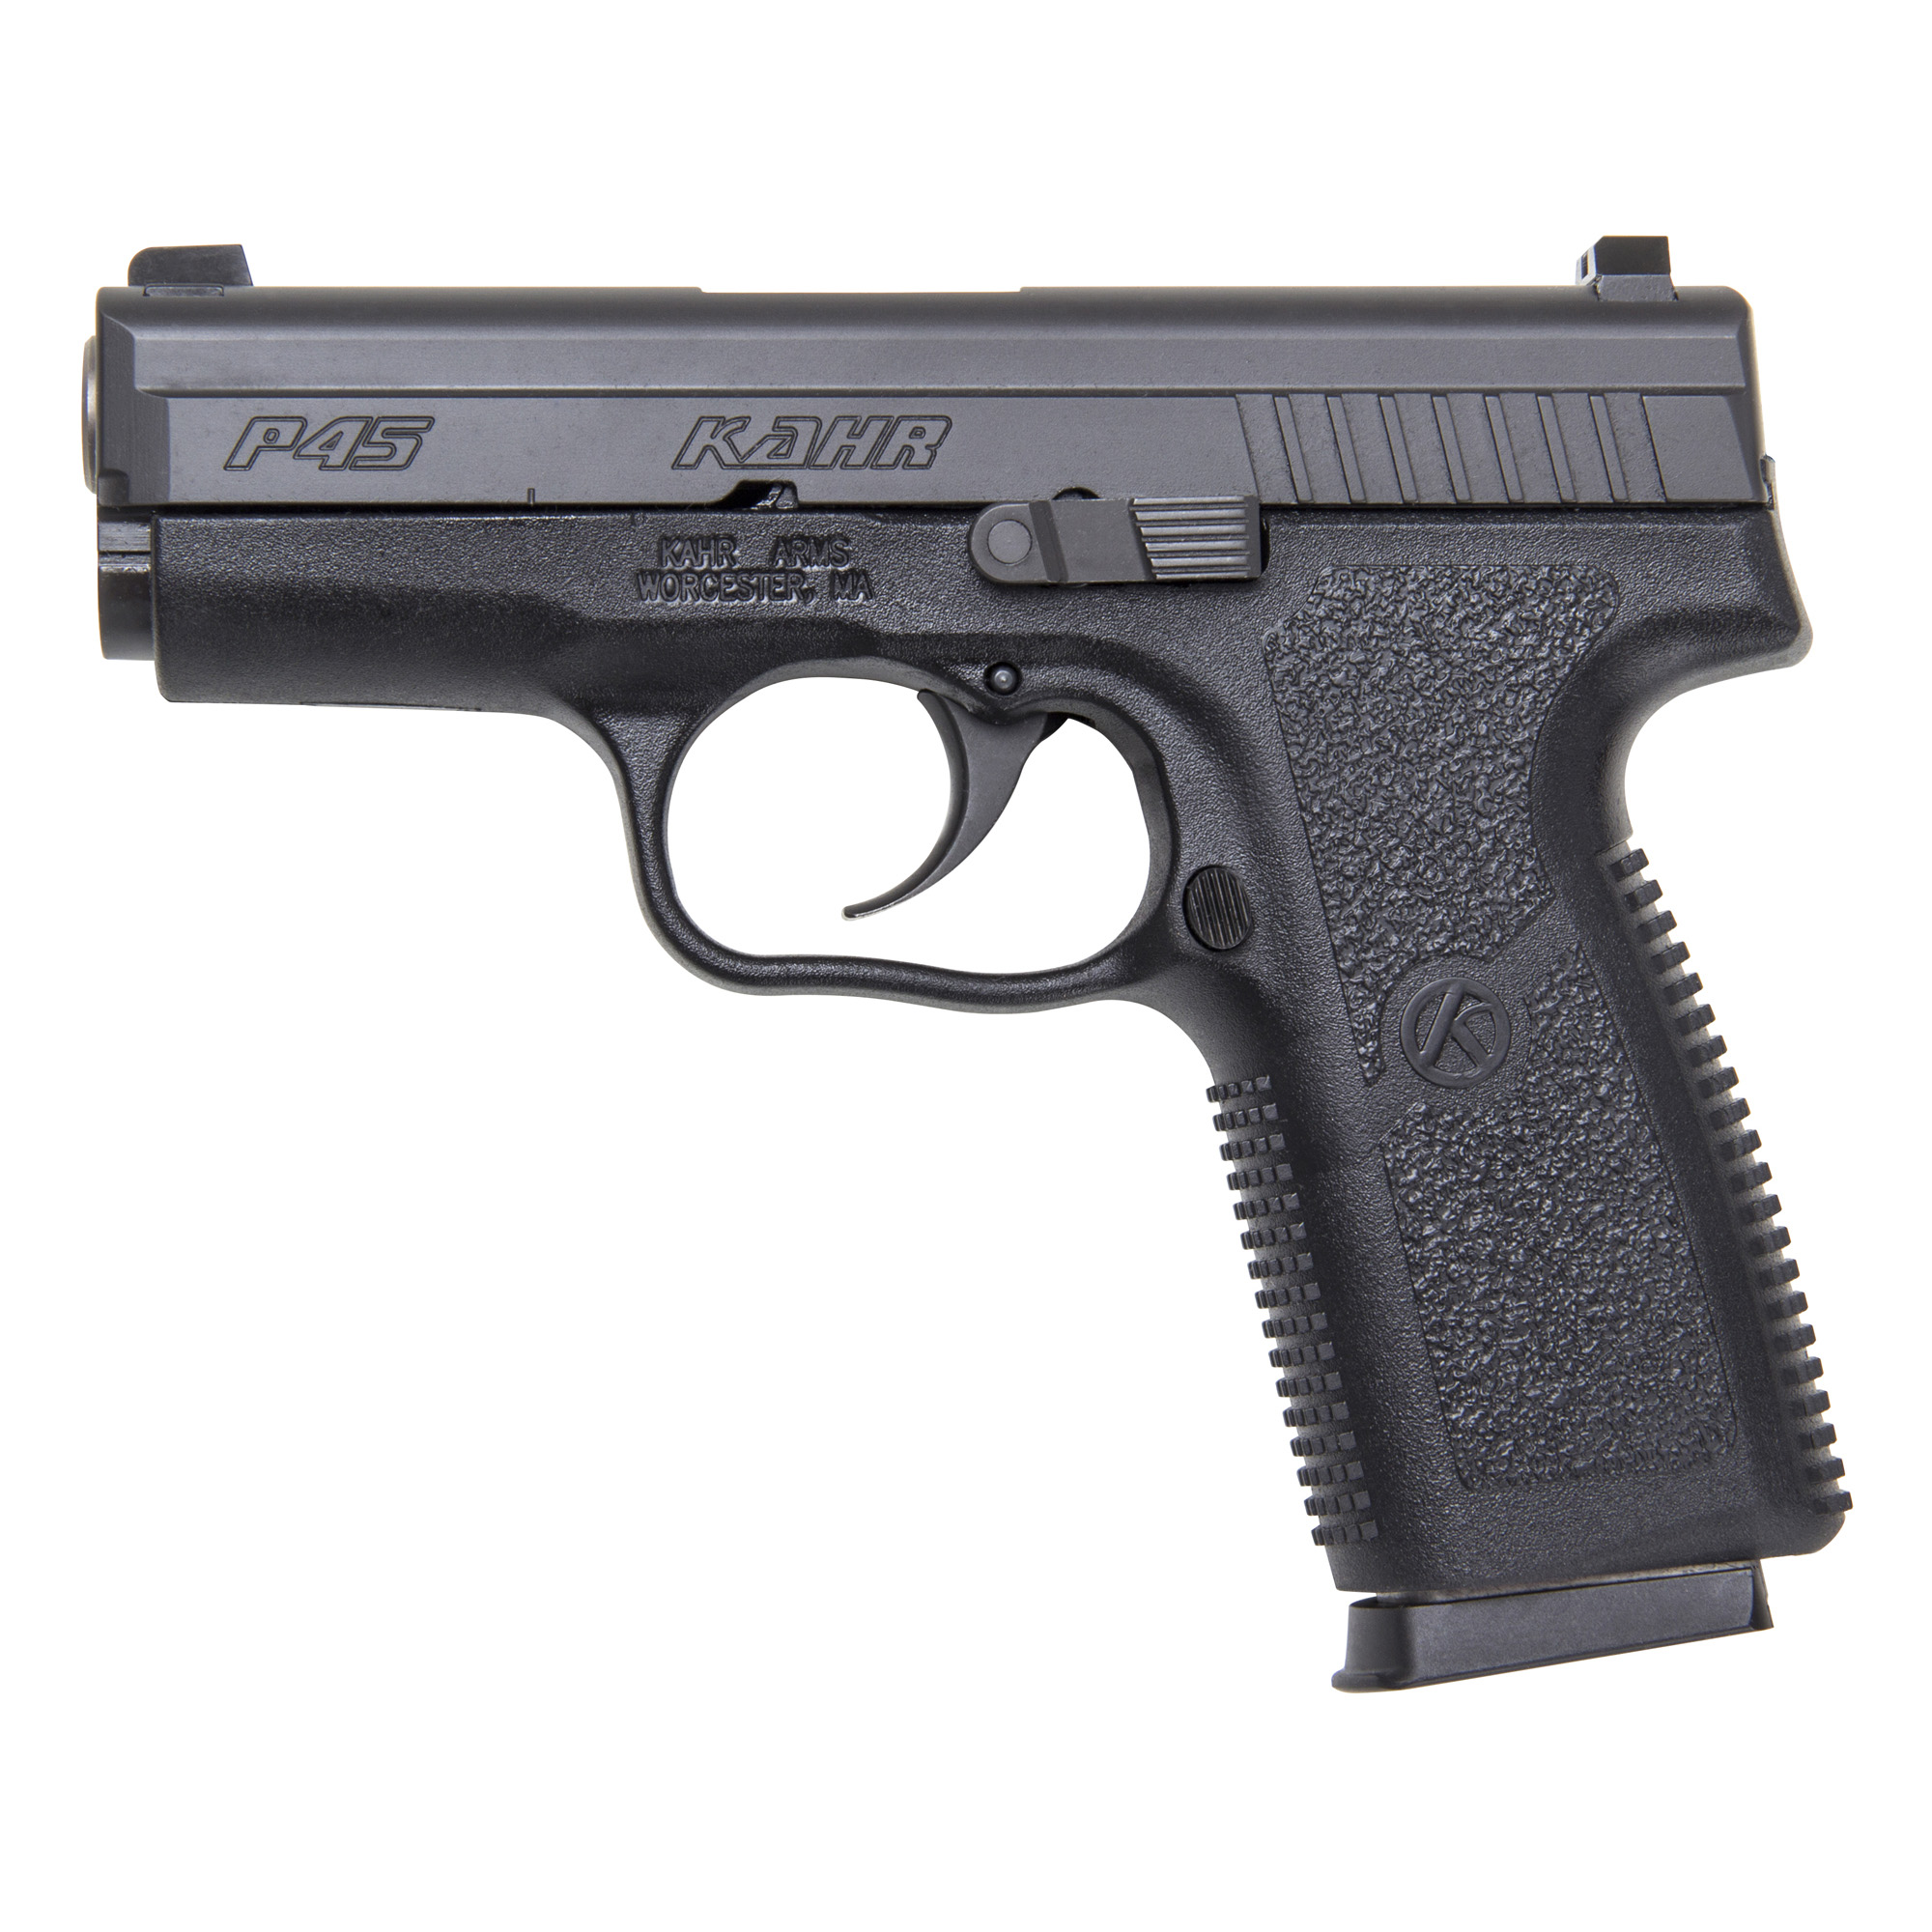 """Kahr Arms offers the best concealed carry/back-up gun on the market by offering high quality and total reliability in a lightweight package. Featuring a Lothar Walther match-grade polygonal-rifled barrel and silky smooth DAO trigger"""" the P Series provides excellent balance and accuracy."""